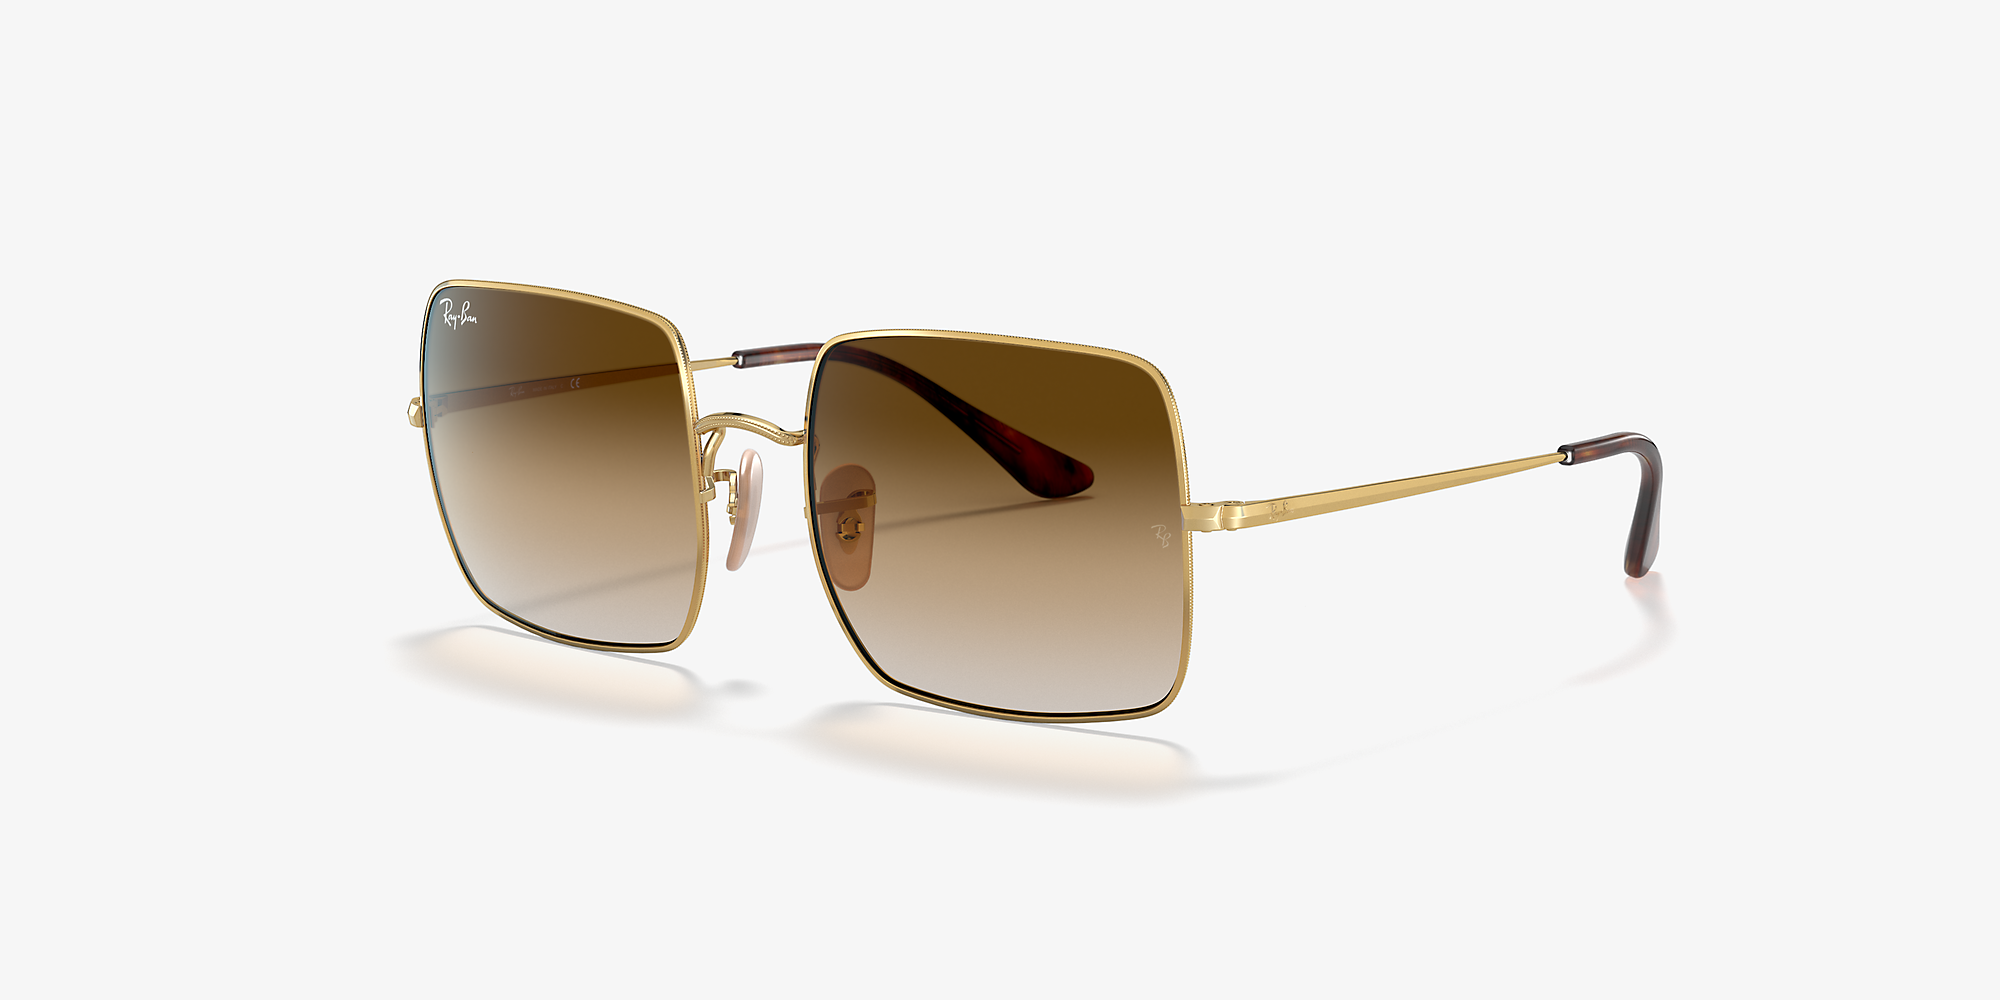 705c6605f67b Ray-Ban RB1971 SQUARE 1971 CLASSIC Gold/Light Brown image 1 ...